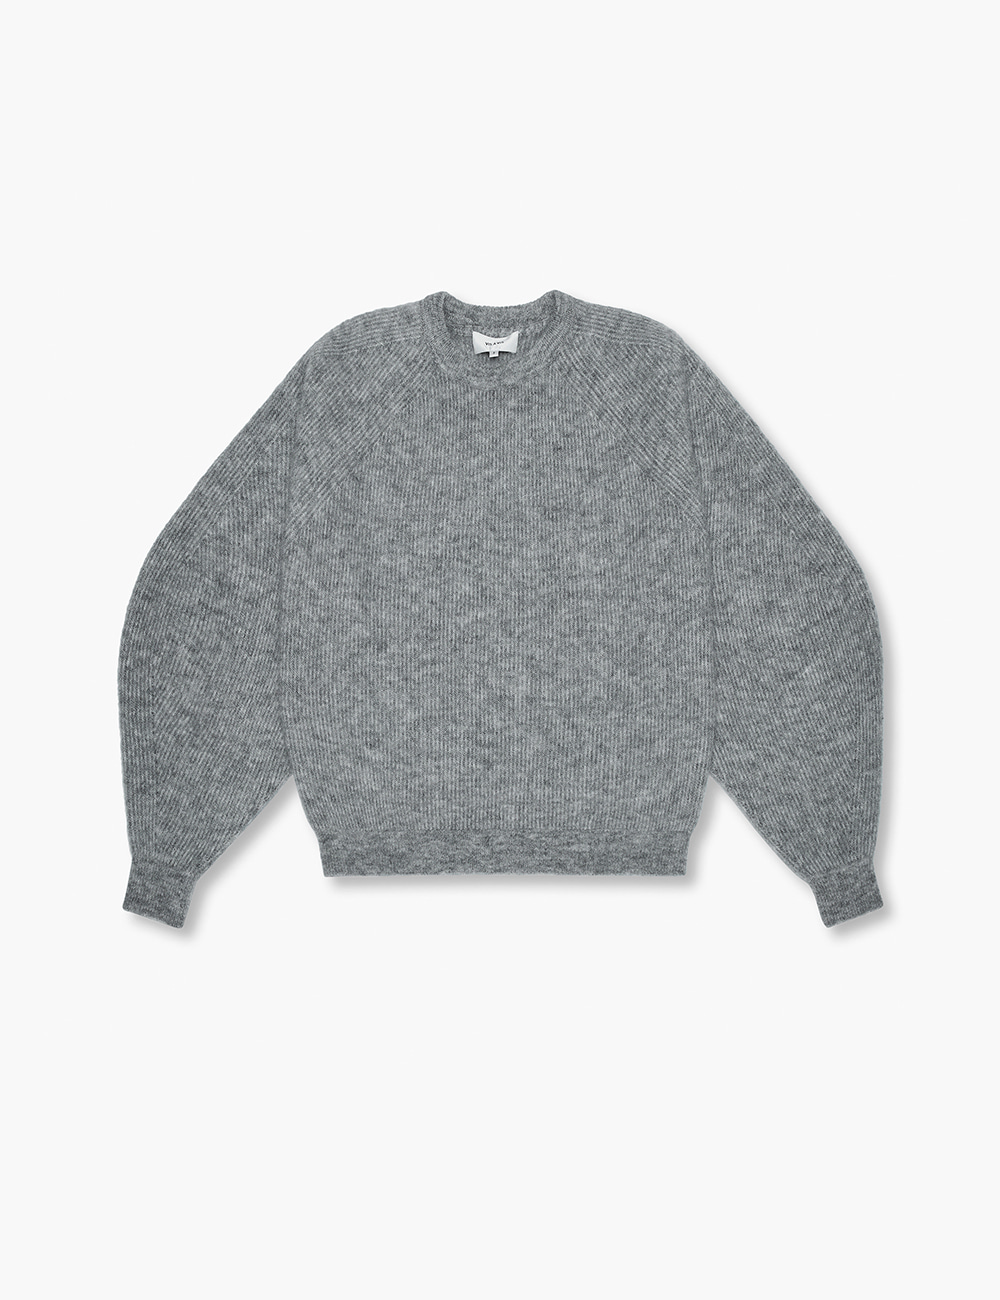 RAGLAN SWEATER (GRAY)